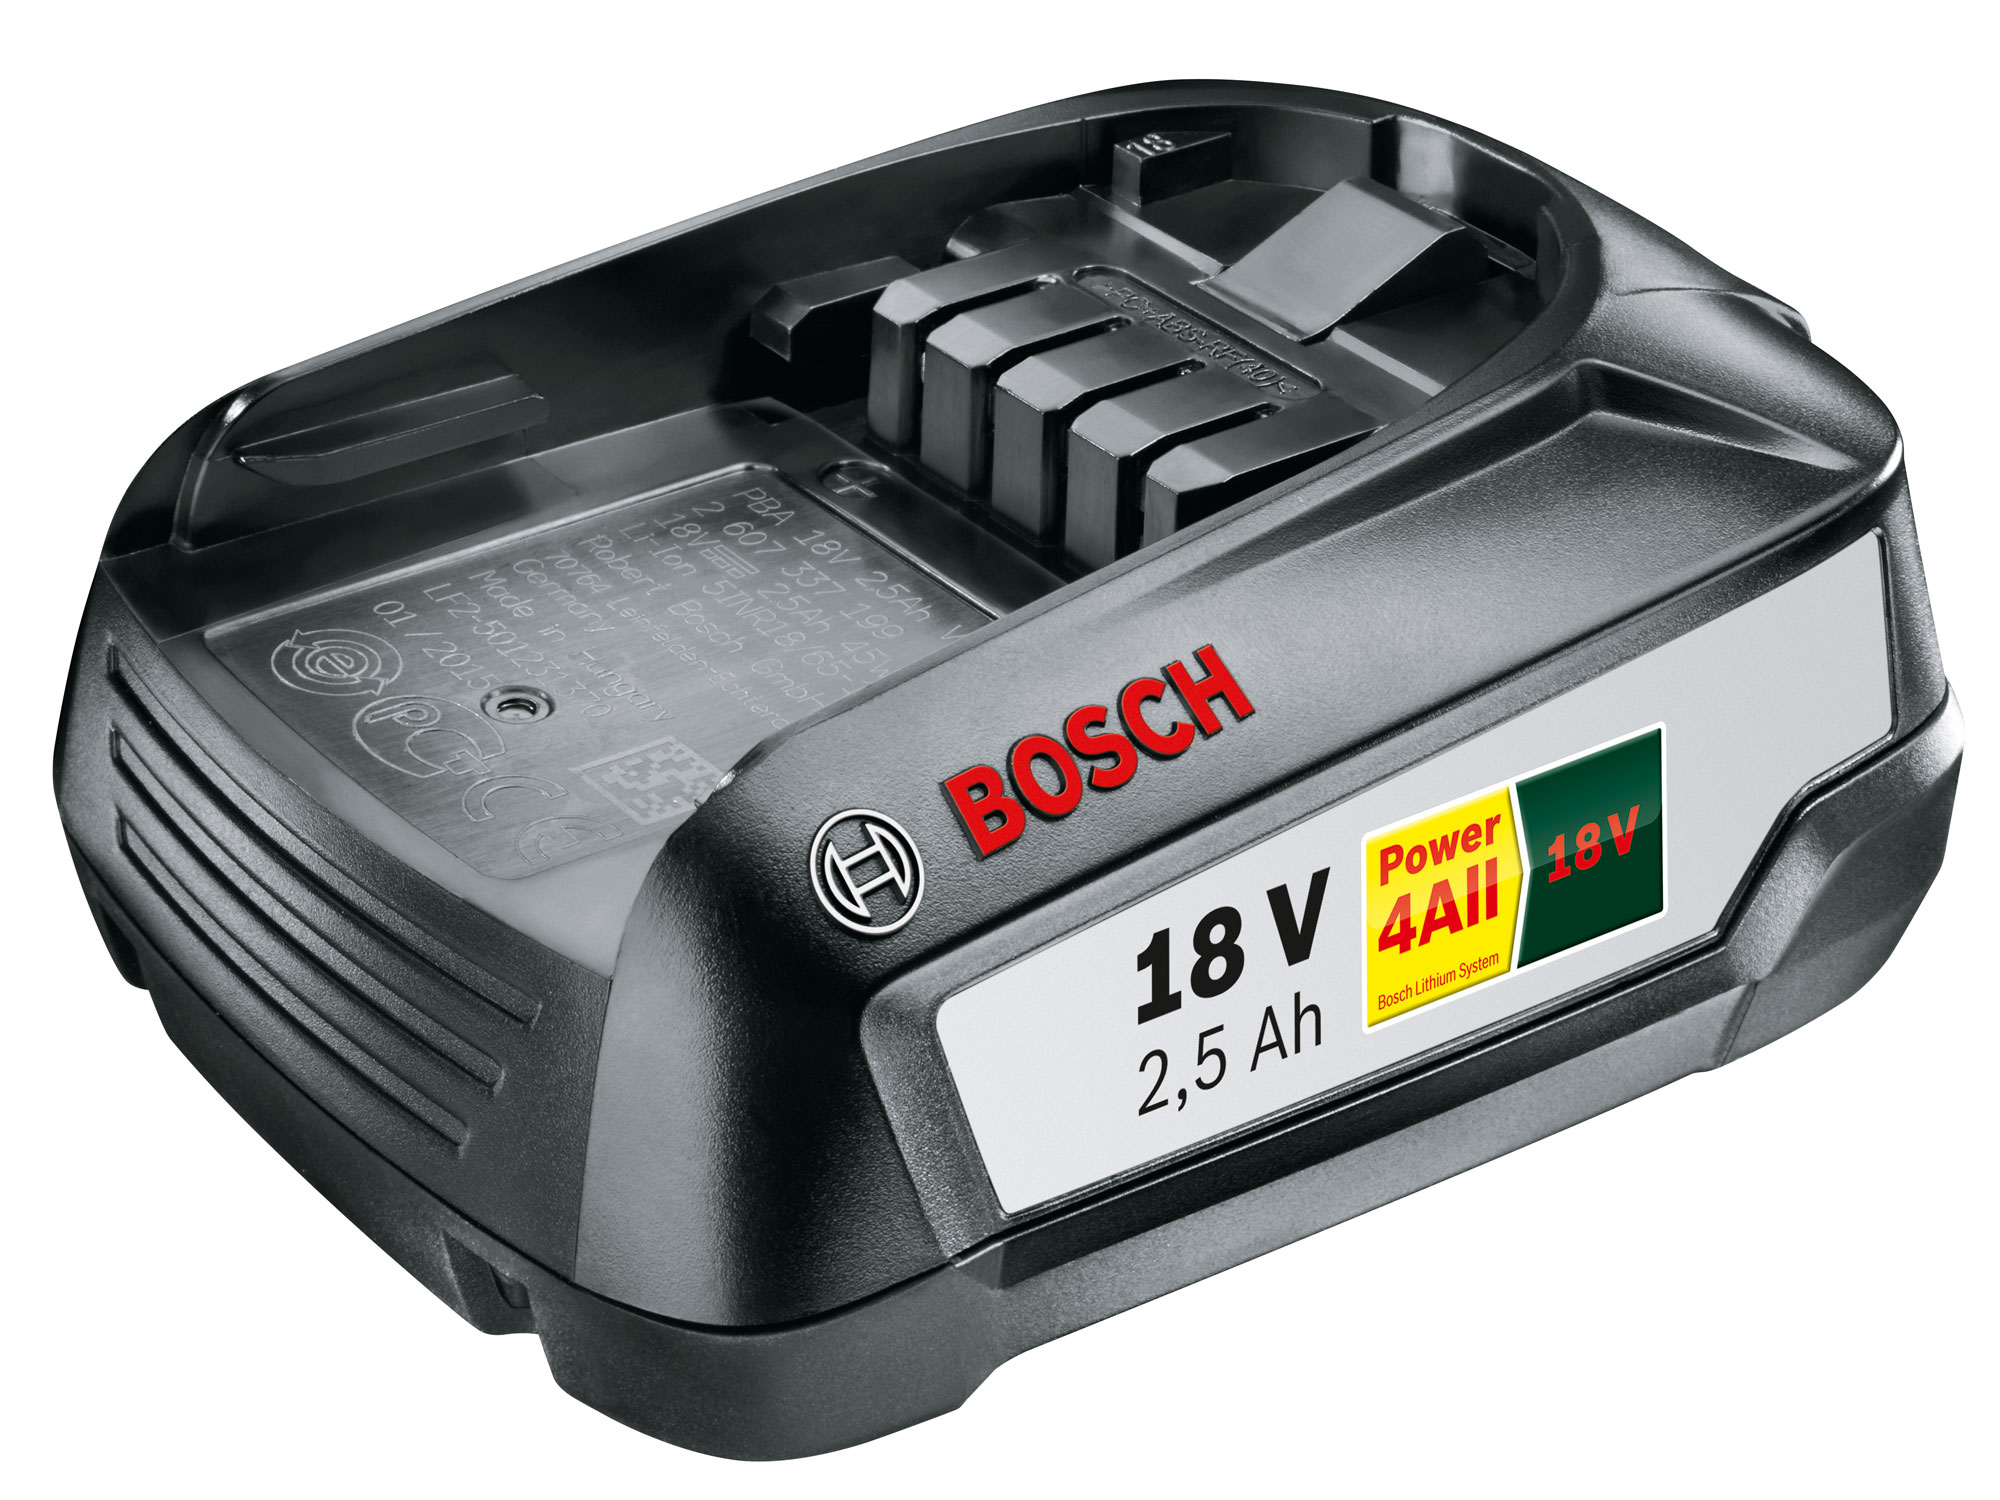 bosch 18 v 2 5 ah lithium ionen akku f r bosch 18 volt gartenger te bei. Black Bedroom Furniture Sets. Home Design Ideas